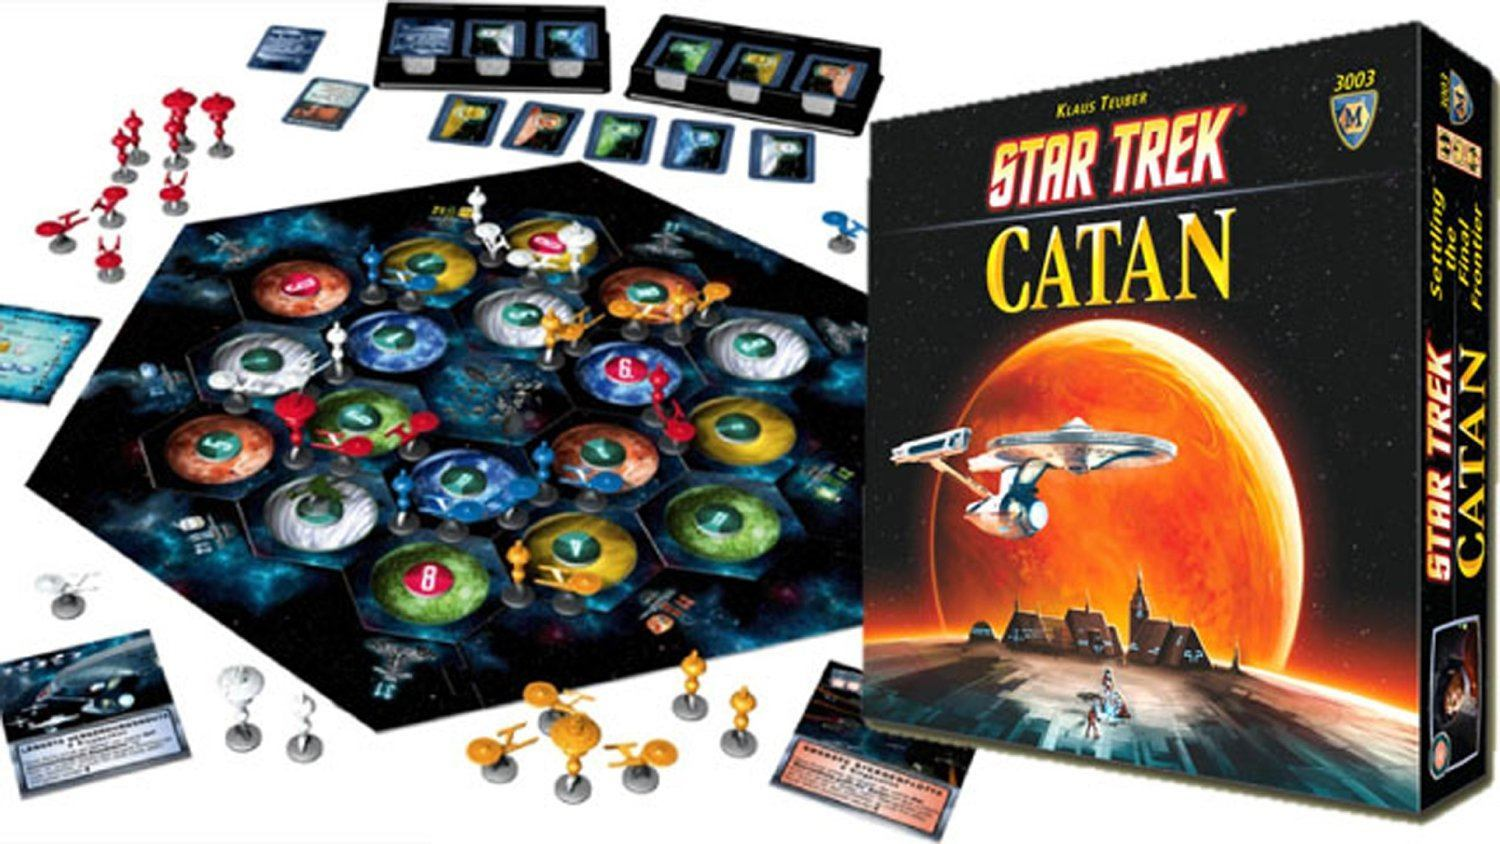 star trek catan board games 2015 hottest toys